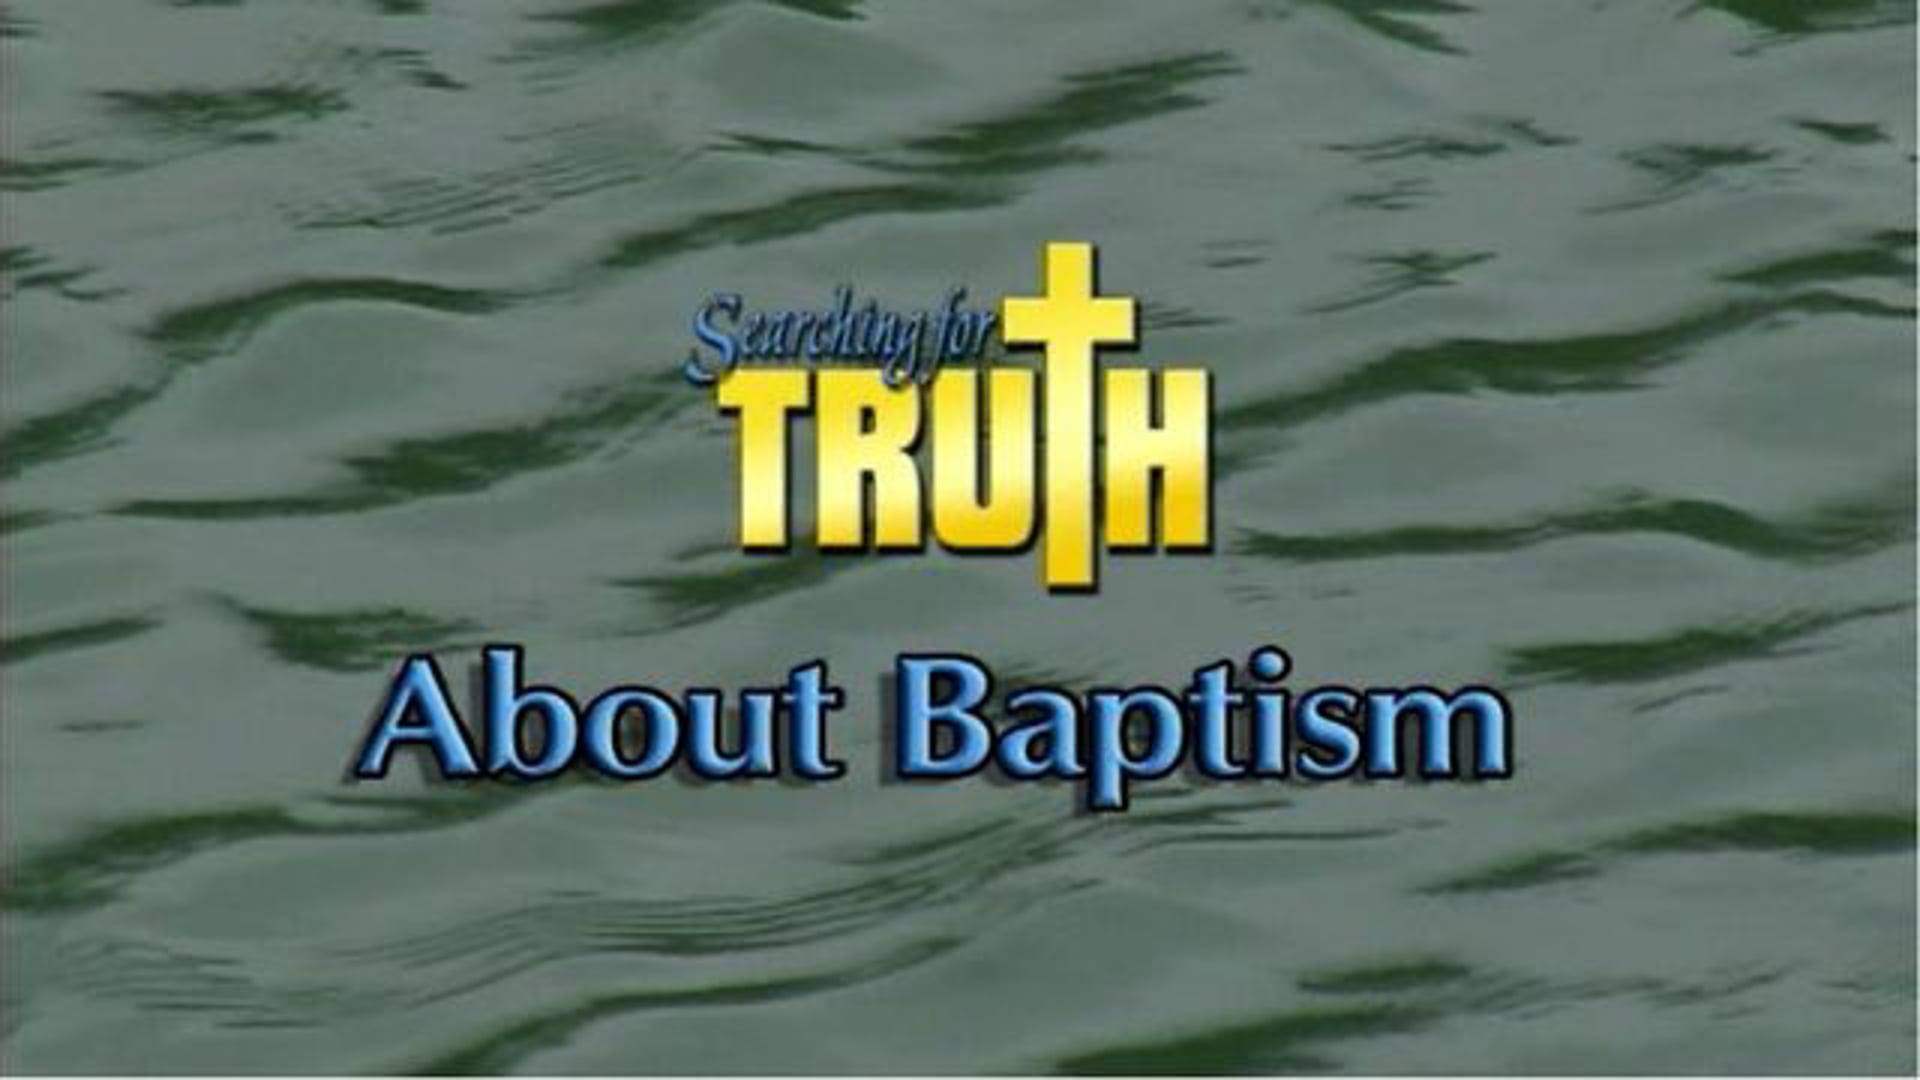 Searching for Truth About Baptism